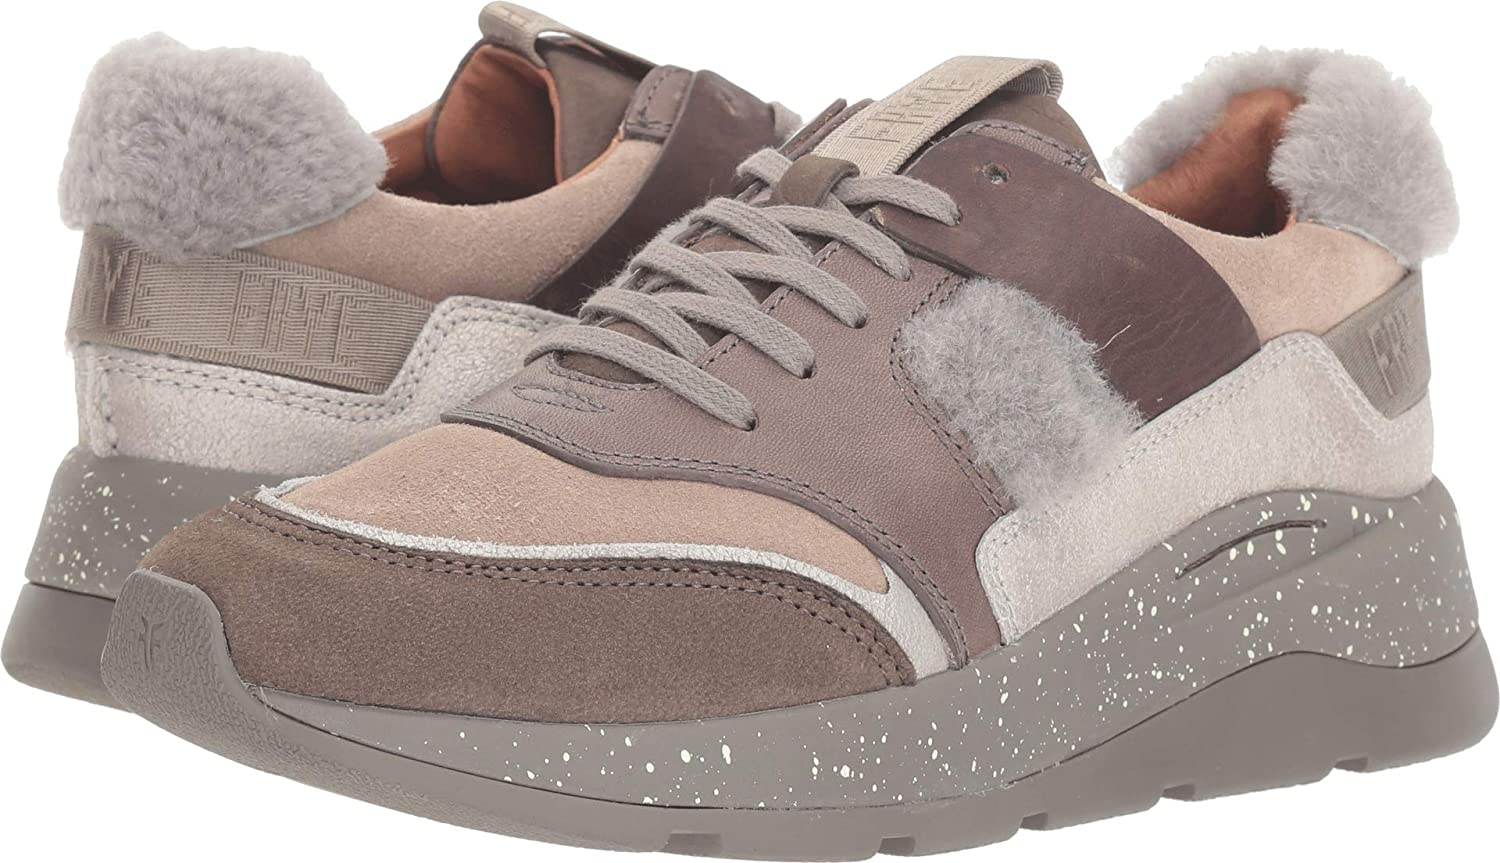 Frye Womens Willow Low Lace Sneaker